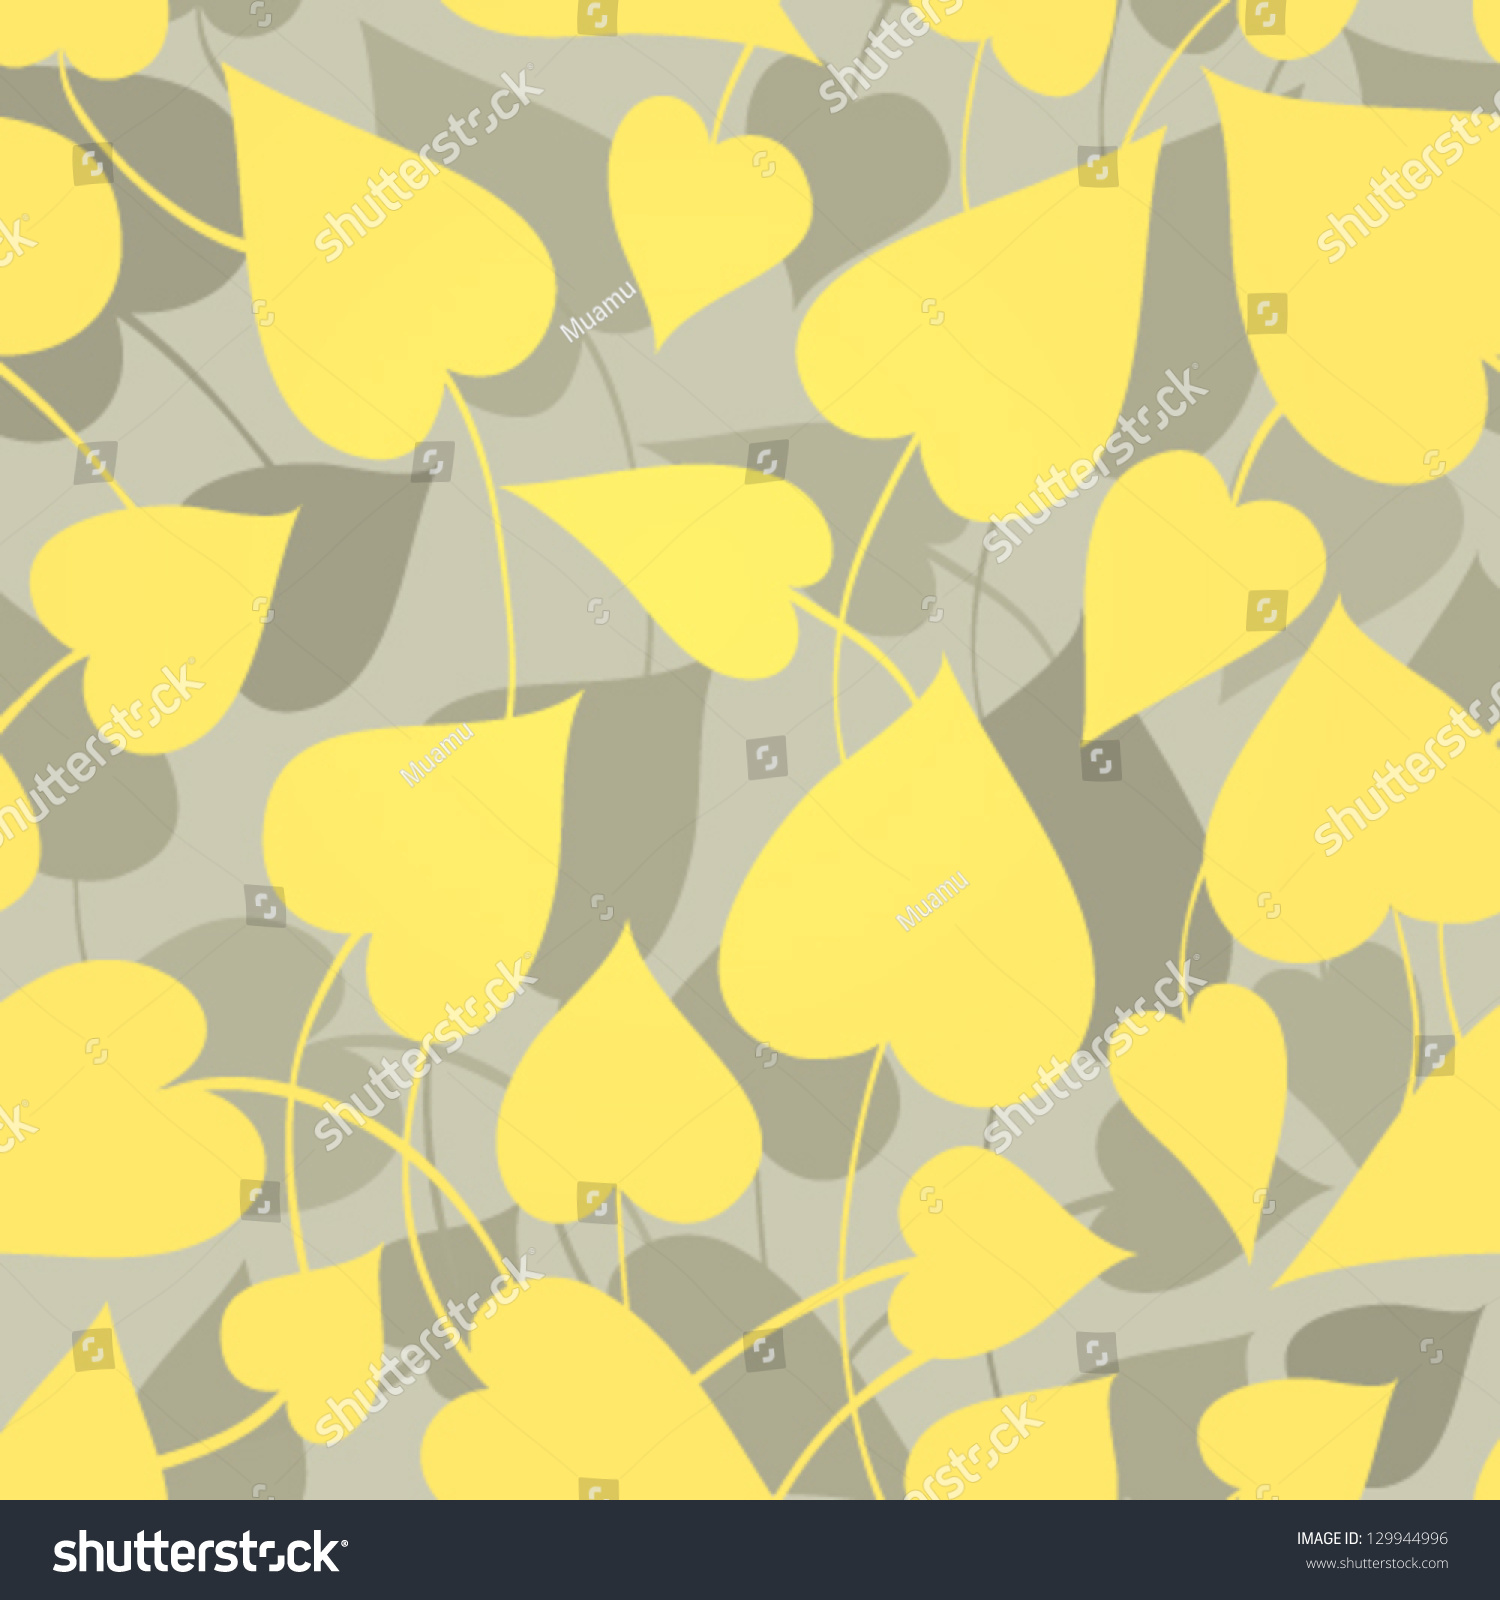 Floral wallpaper yellow leafs on gray stock vector 129944996 shutterstock - Gray and yellow wallpaper ...